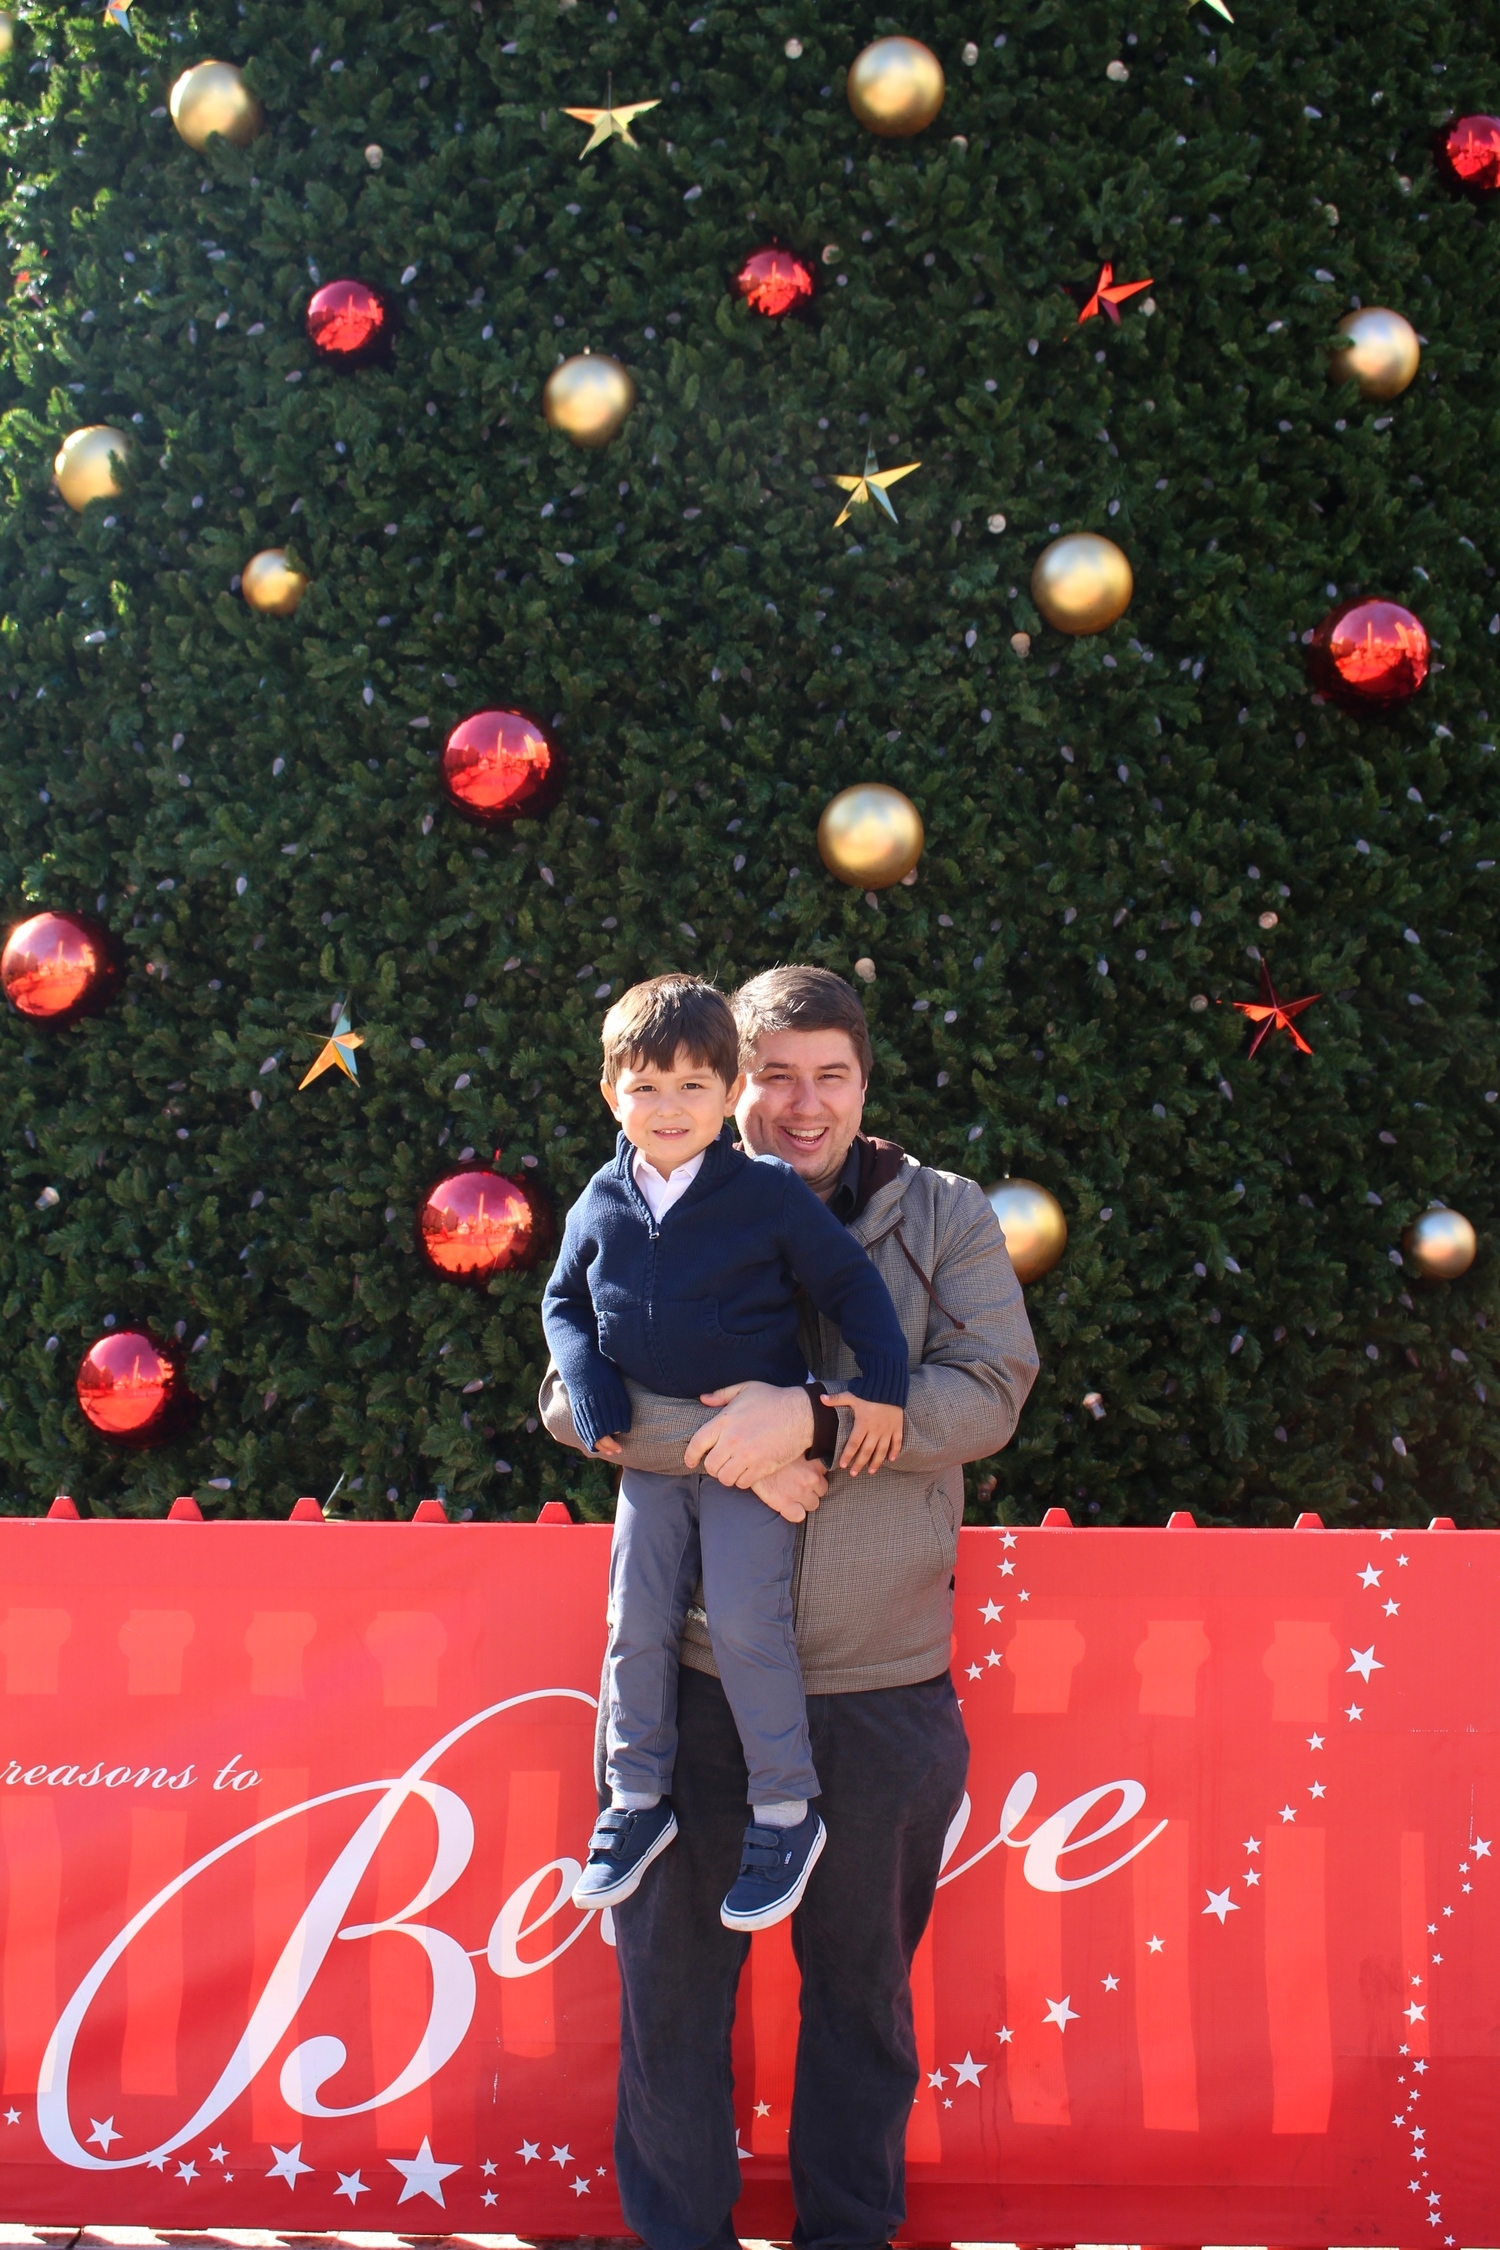 Mark Jacinto and Papi at Union Square by the giant Christmas tree. Love youguys<3